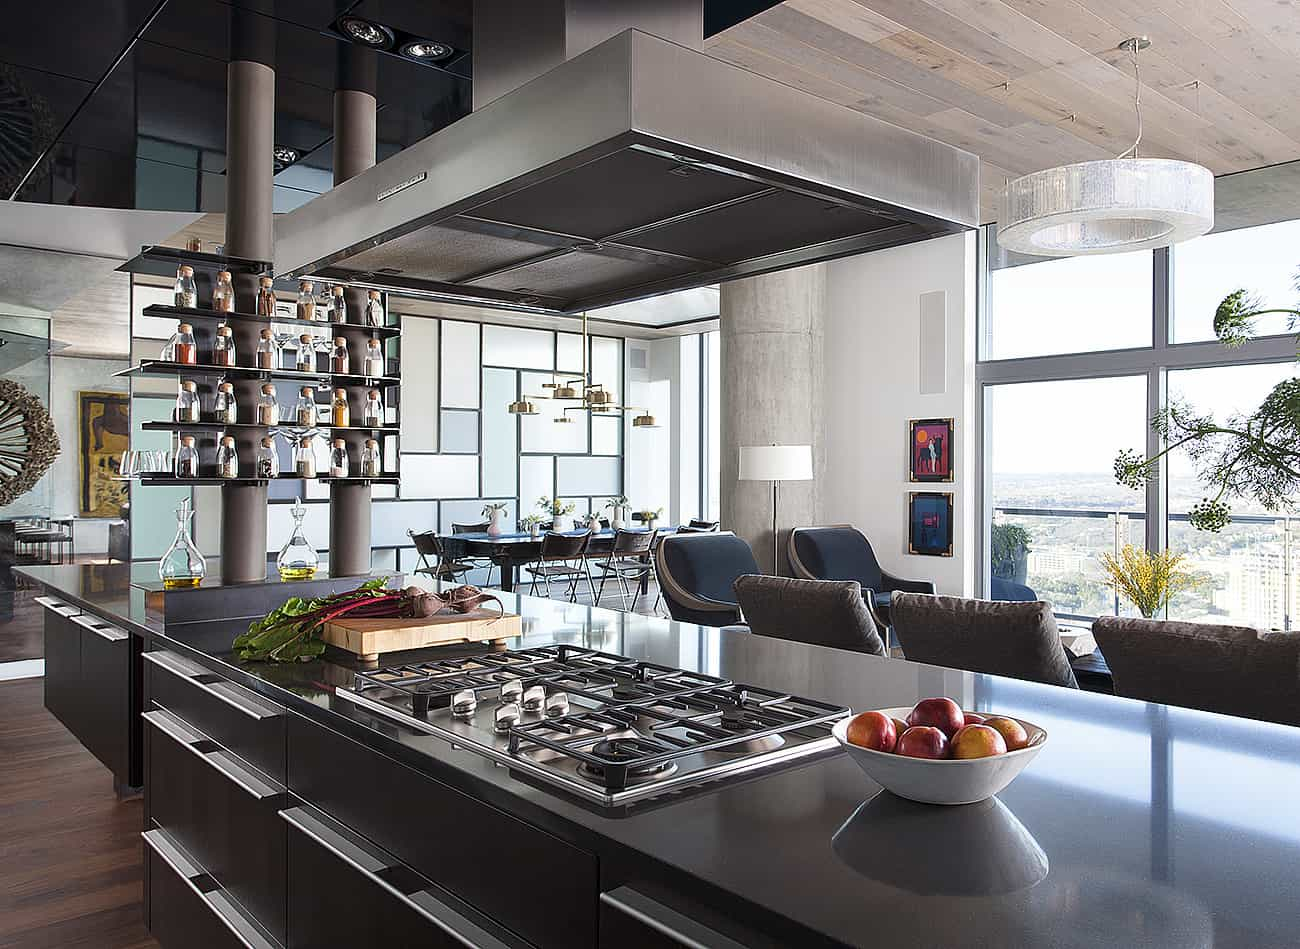 Open concept great room in luxury condo by Sanders Architecture